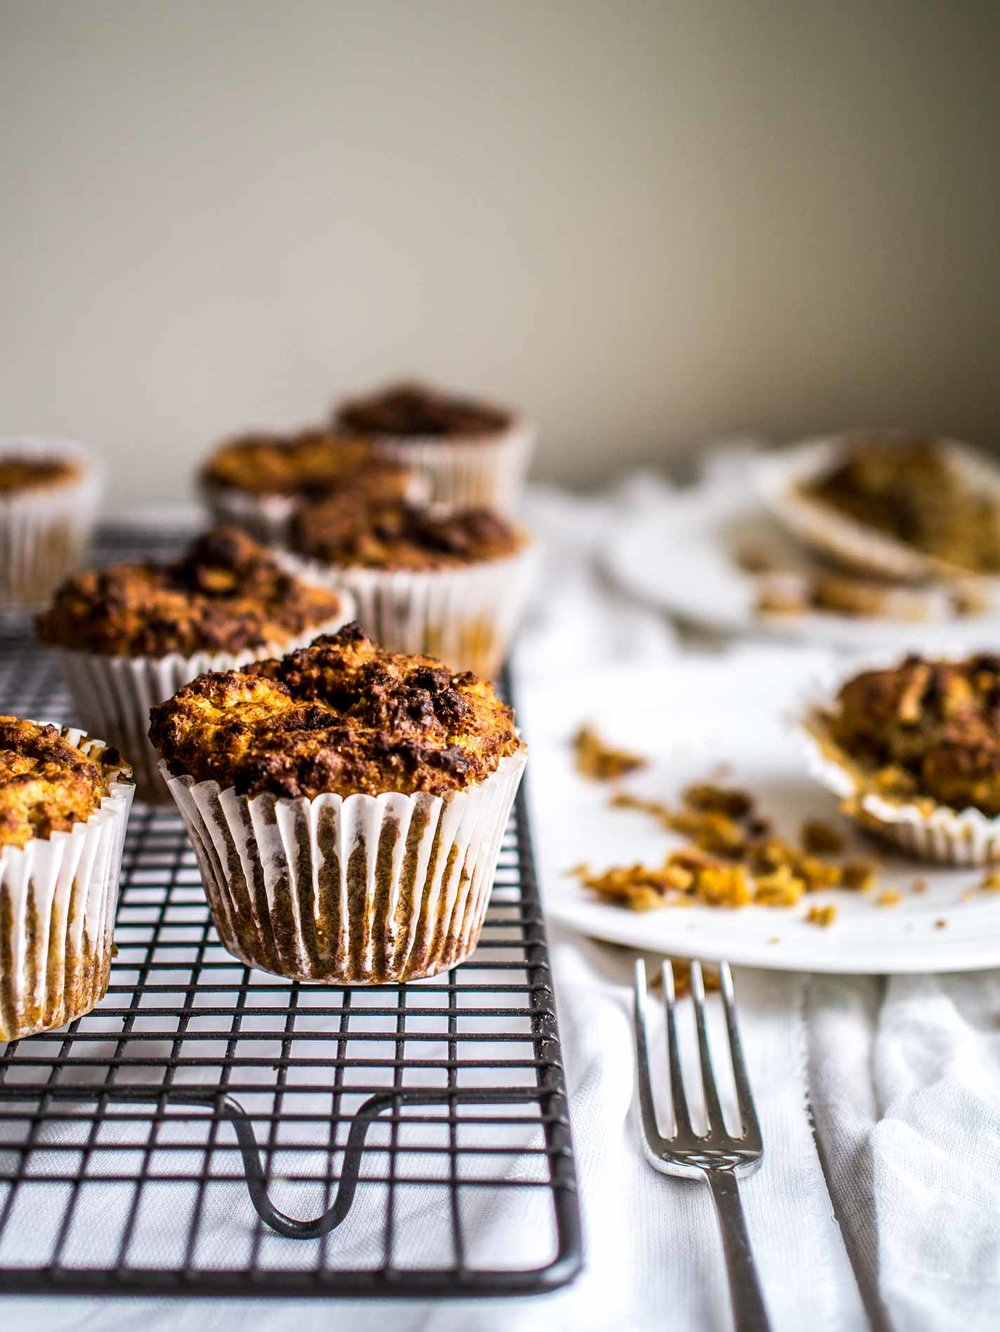 Healthy Vegan Muffins! So delicious with hidden goodness packed in - naturally sweetened by apples and sweet potato, carrot, zucchini or beetroot, and held together by mashed banana! Perfect for breakfast, in lunchboxes or as a snack.   #muffin #recipe #recipes #lunchbox #plant #based #easy #oatmeal #refined #sugar #free #dairyfree